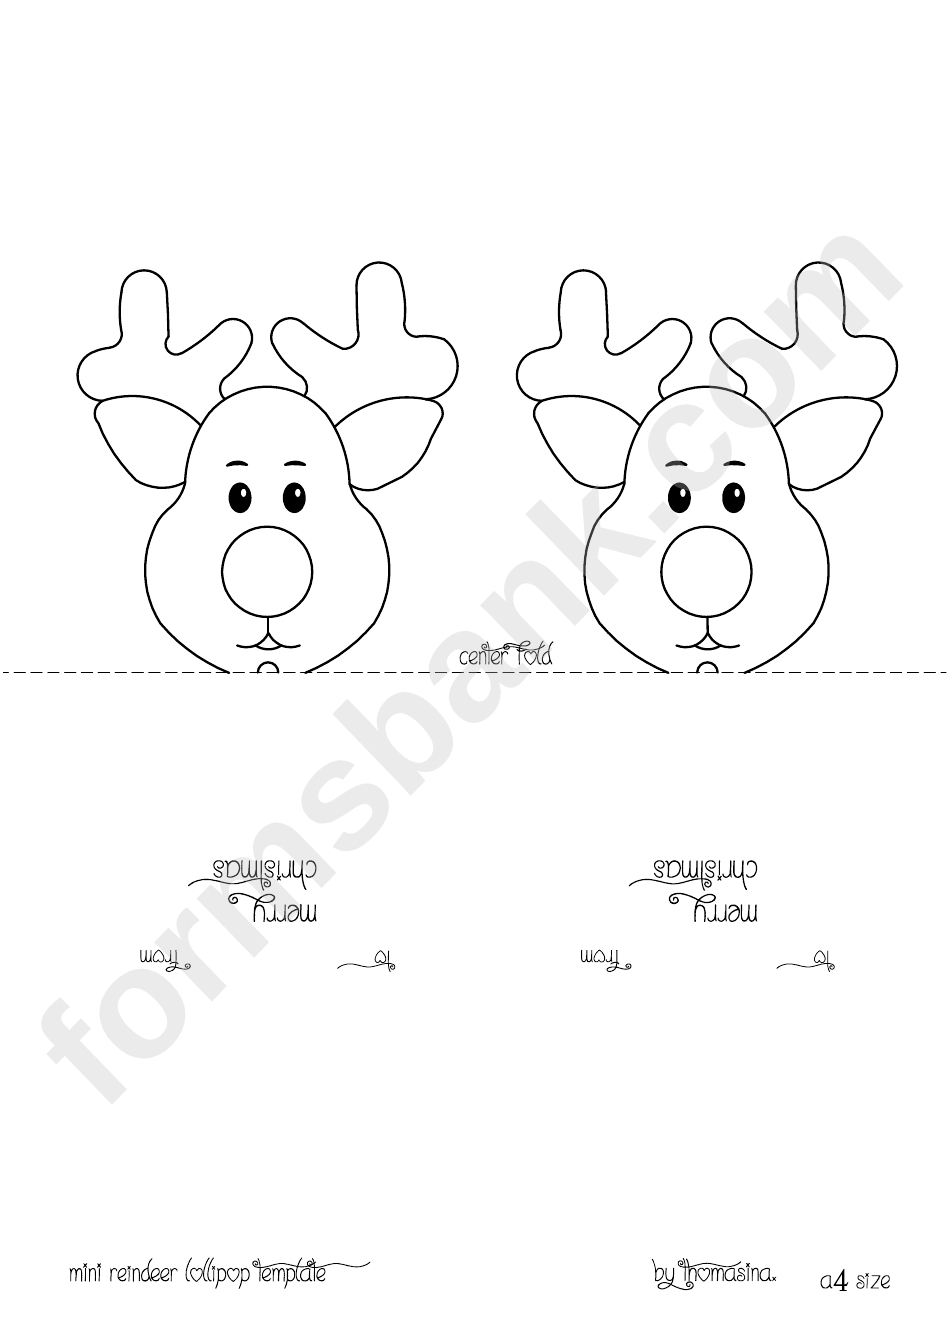 Mini Reindeer Lollipop Template | Holidays!! | Reindeer, Reindeer - Free Printable Reindeer Lollipop Template